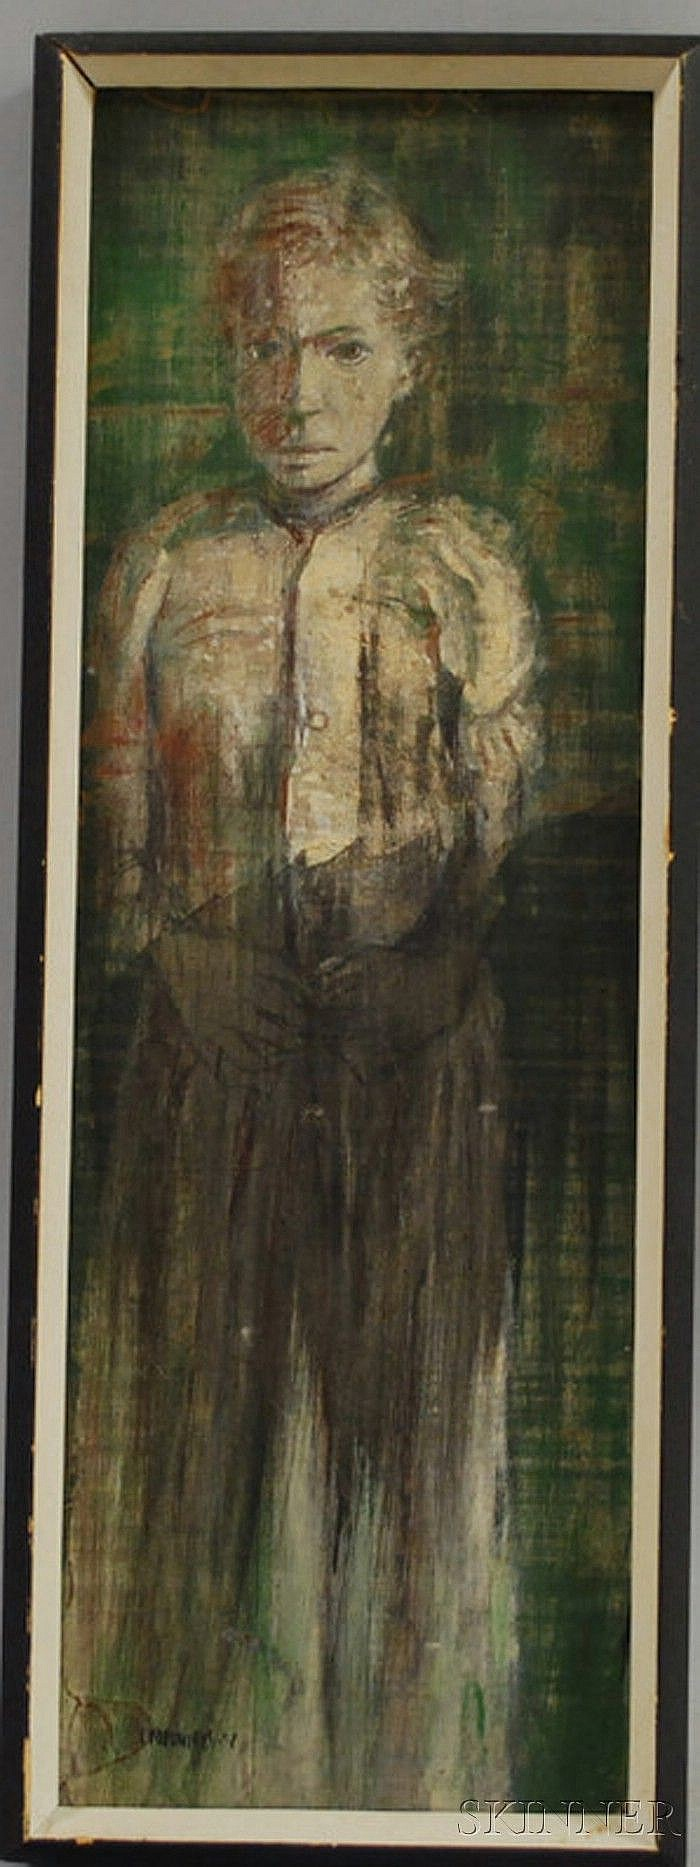 Steven Trefonides (American, b. 1926) Adolescent Girl 1952. Signed and dated